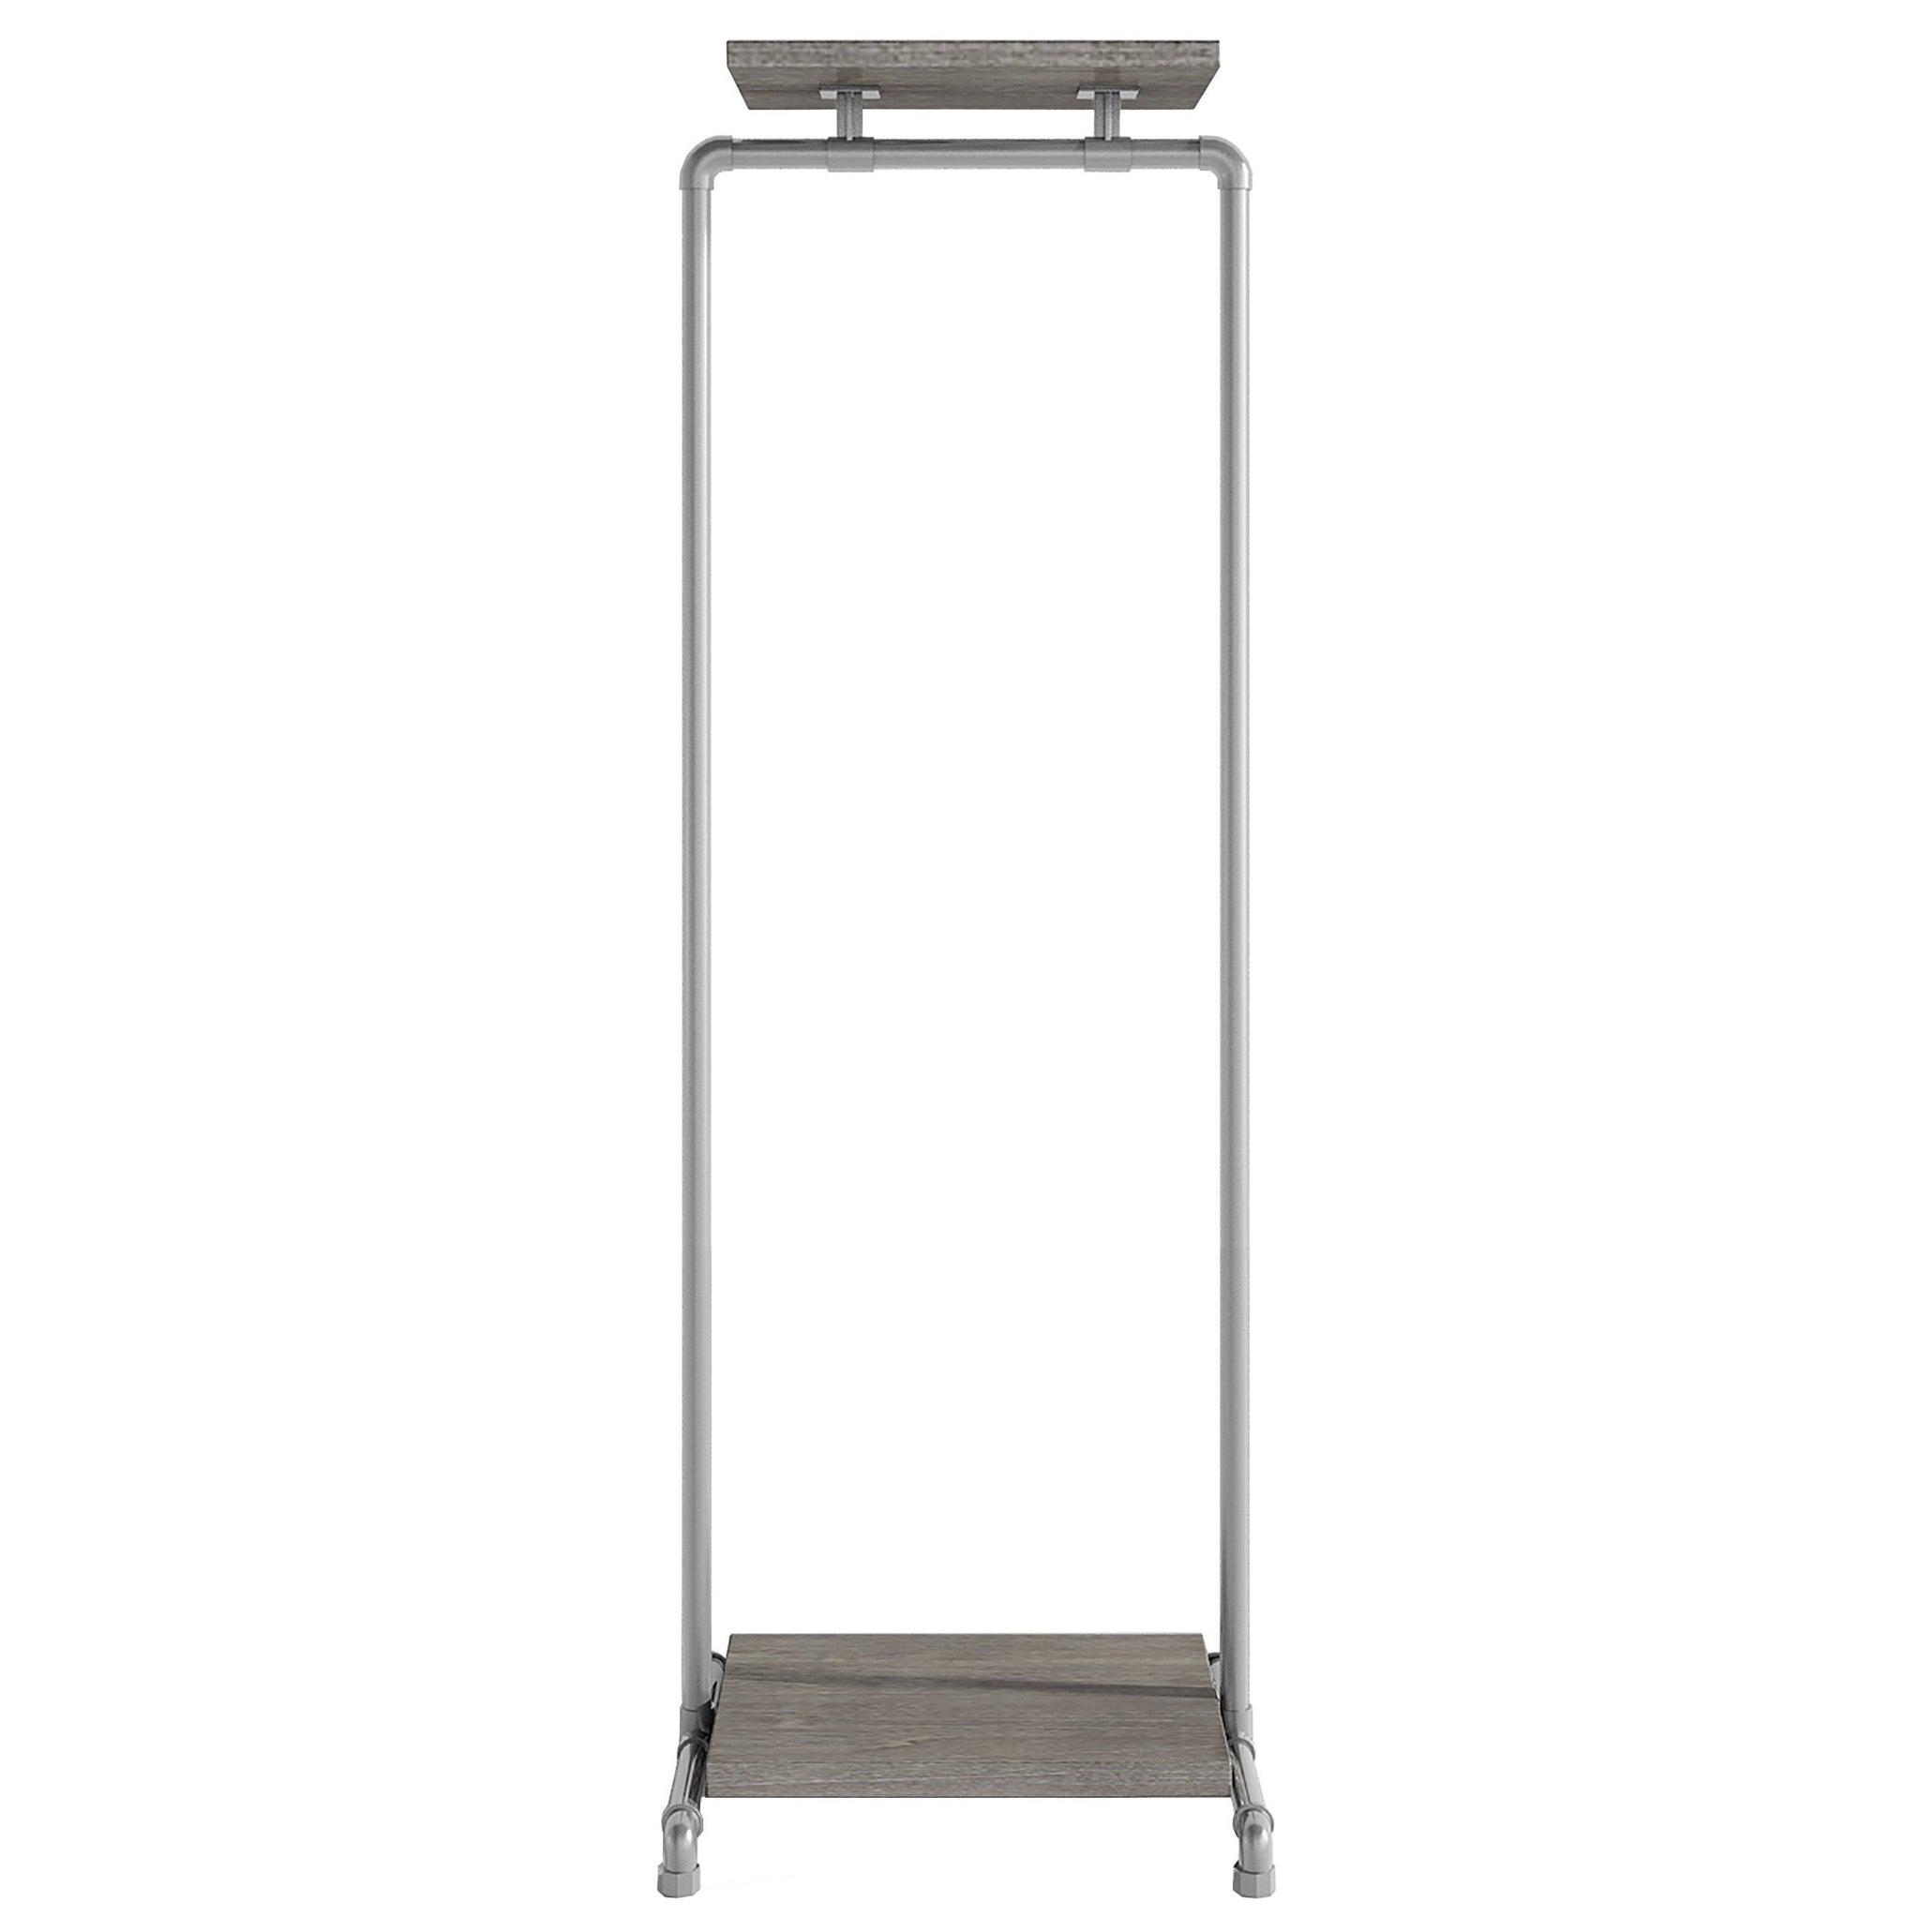 Ziito Clothes Rail B1 / 50 cm / Uden Wood Double Shelf Tøjstativ